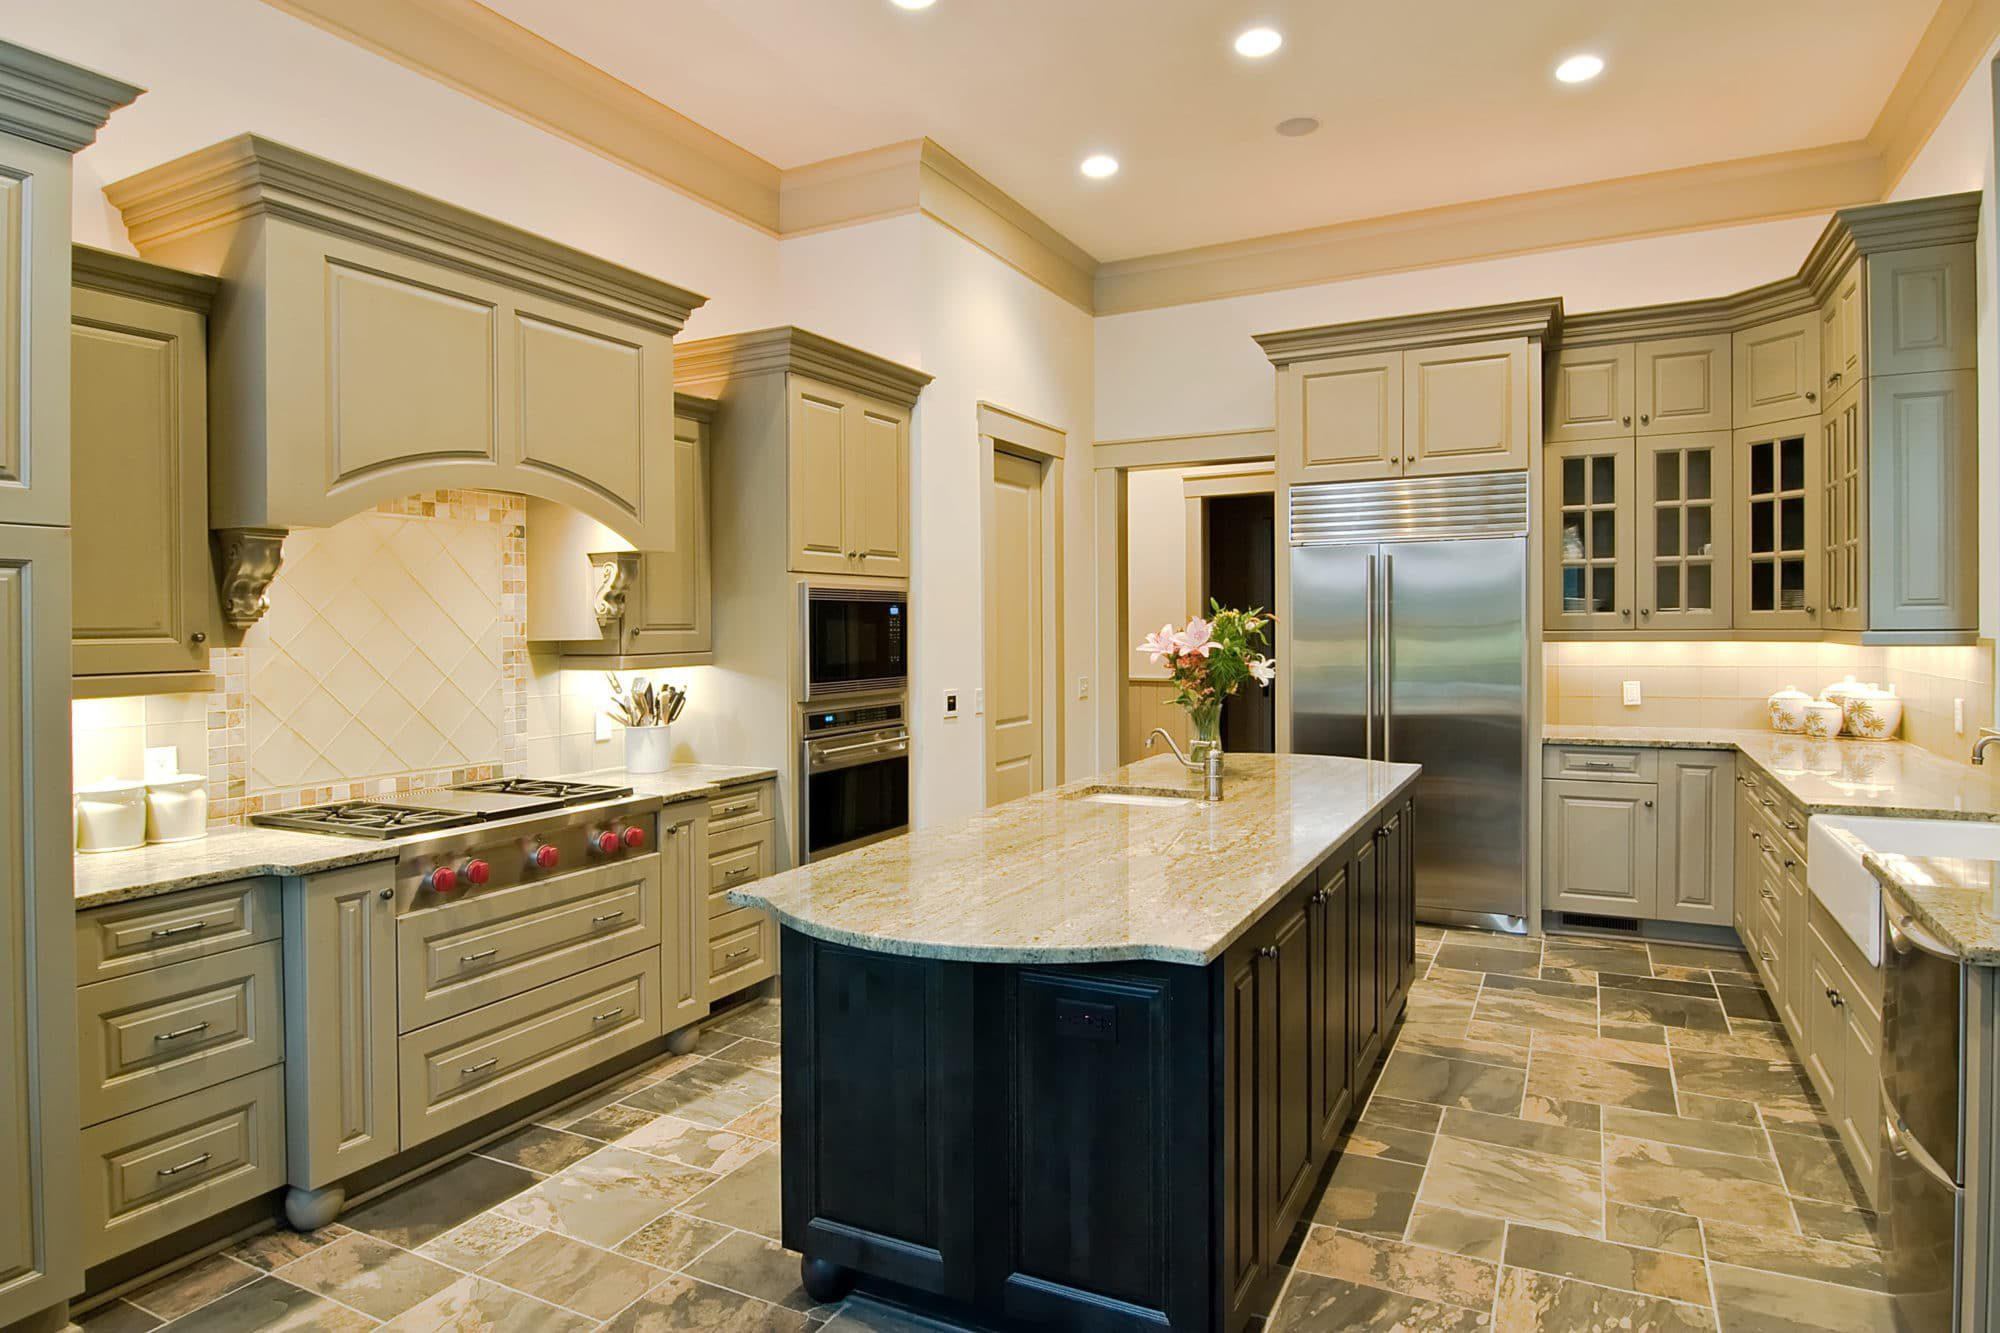 Green luxury kitchen with new cabinets, countertops, island, stainless appliances and geometrical slate floor